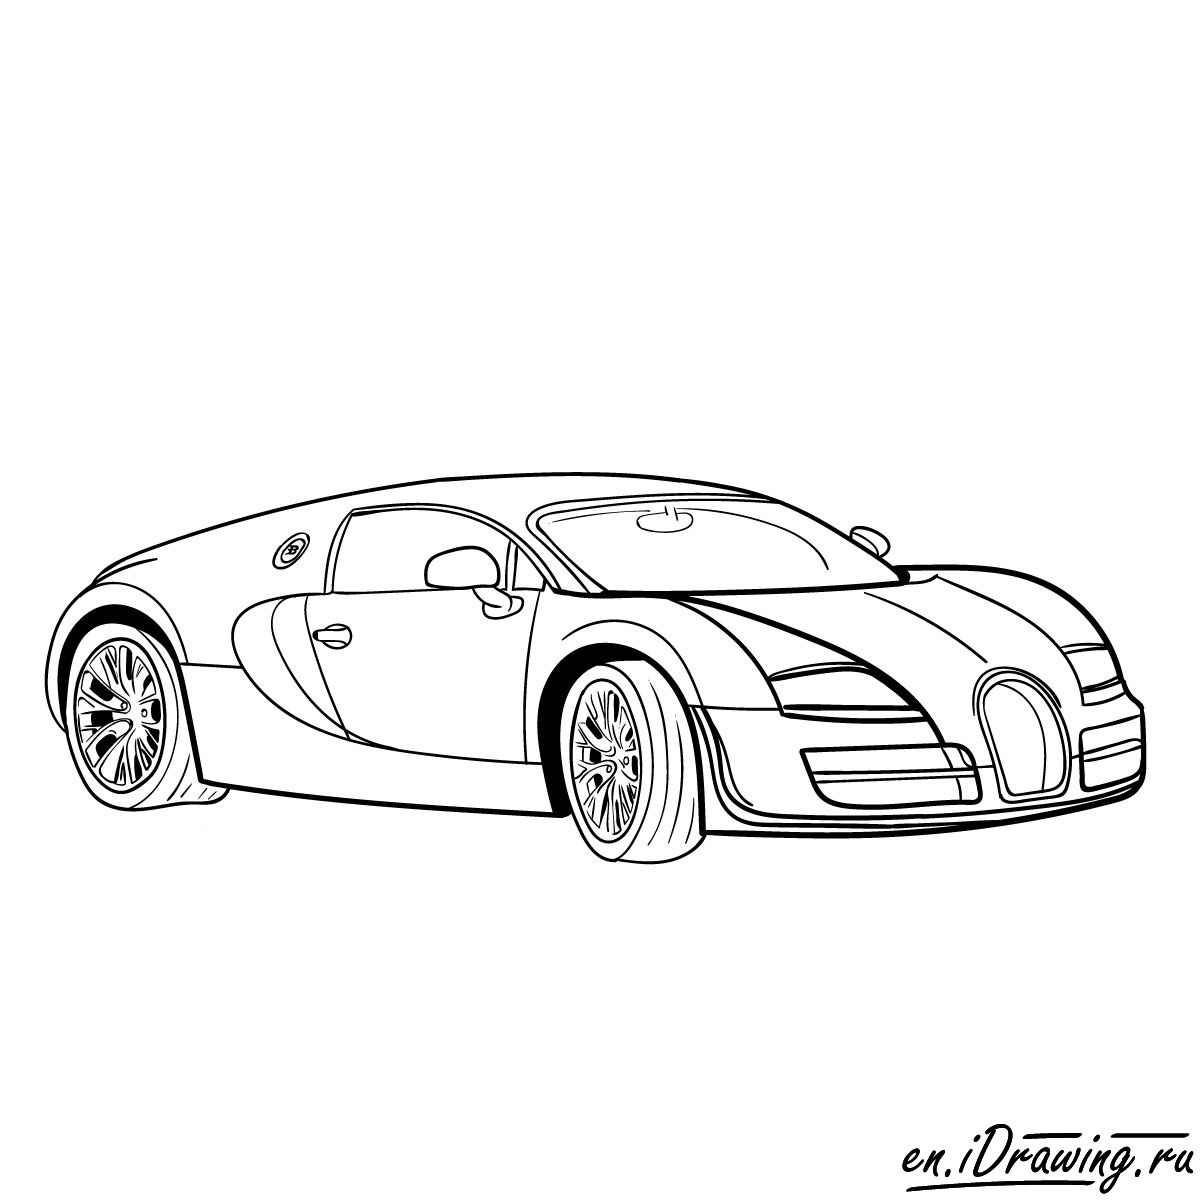 1200x1200 How To Draw Bugatti Veyron 16.4 Super Sport